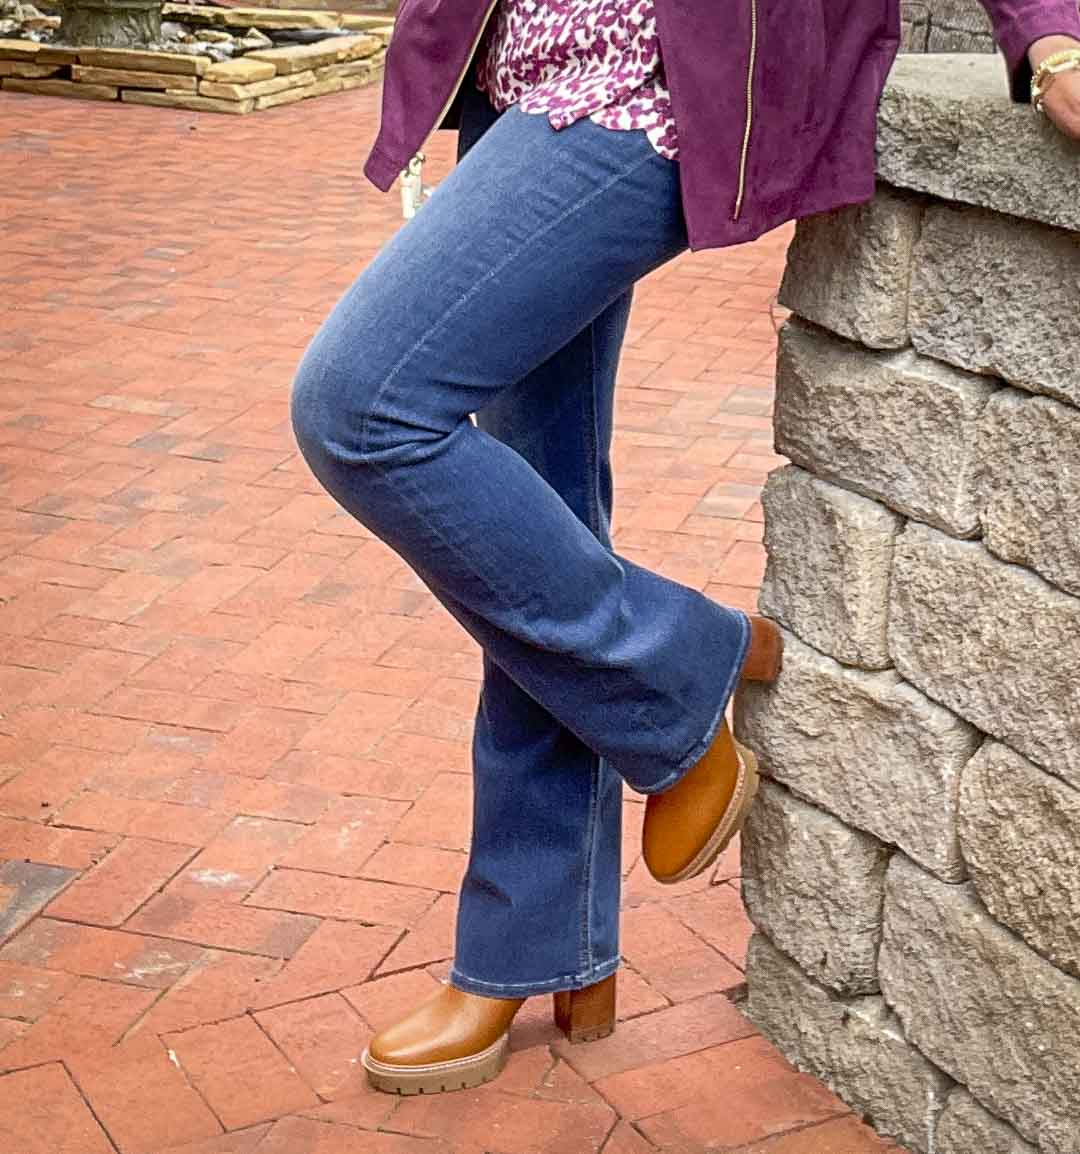 Over 40 fashion blogger, Tania Stephens is wearing a pair of bootcut jeans with lug boots